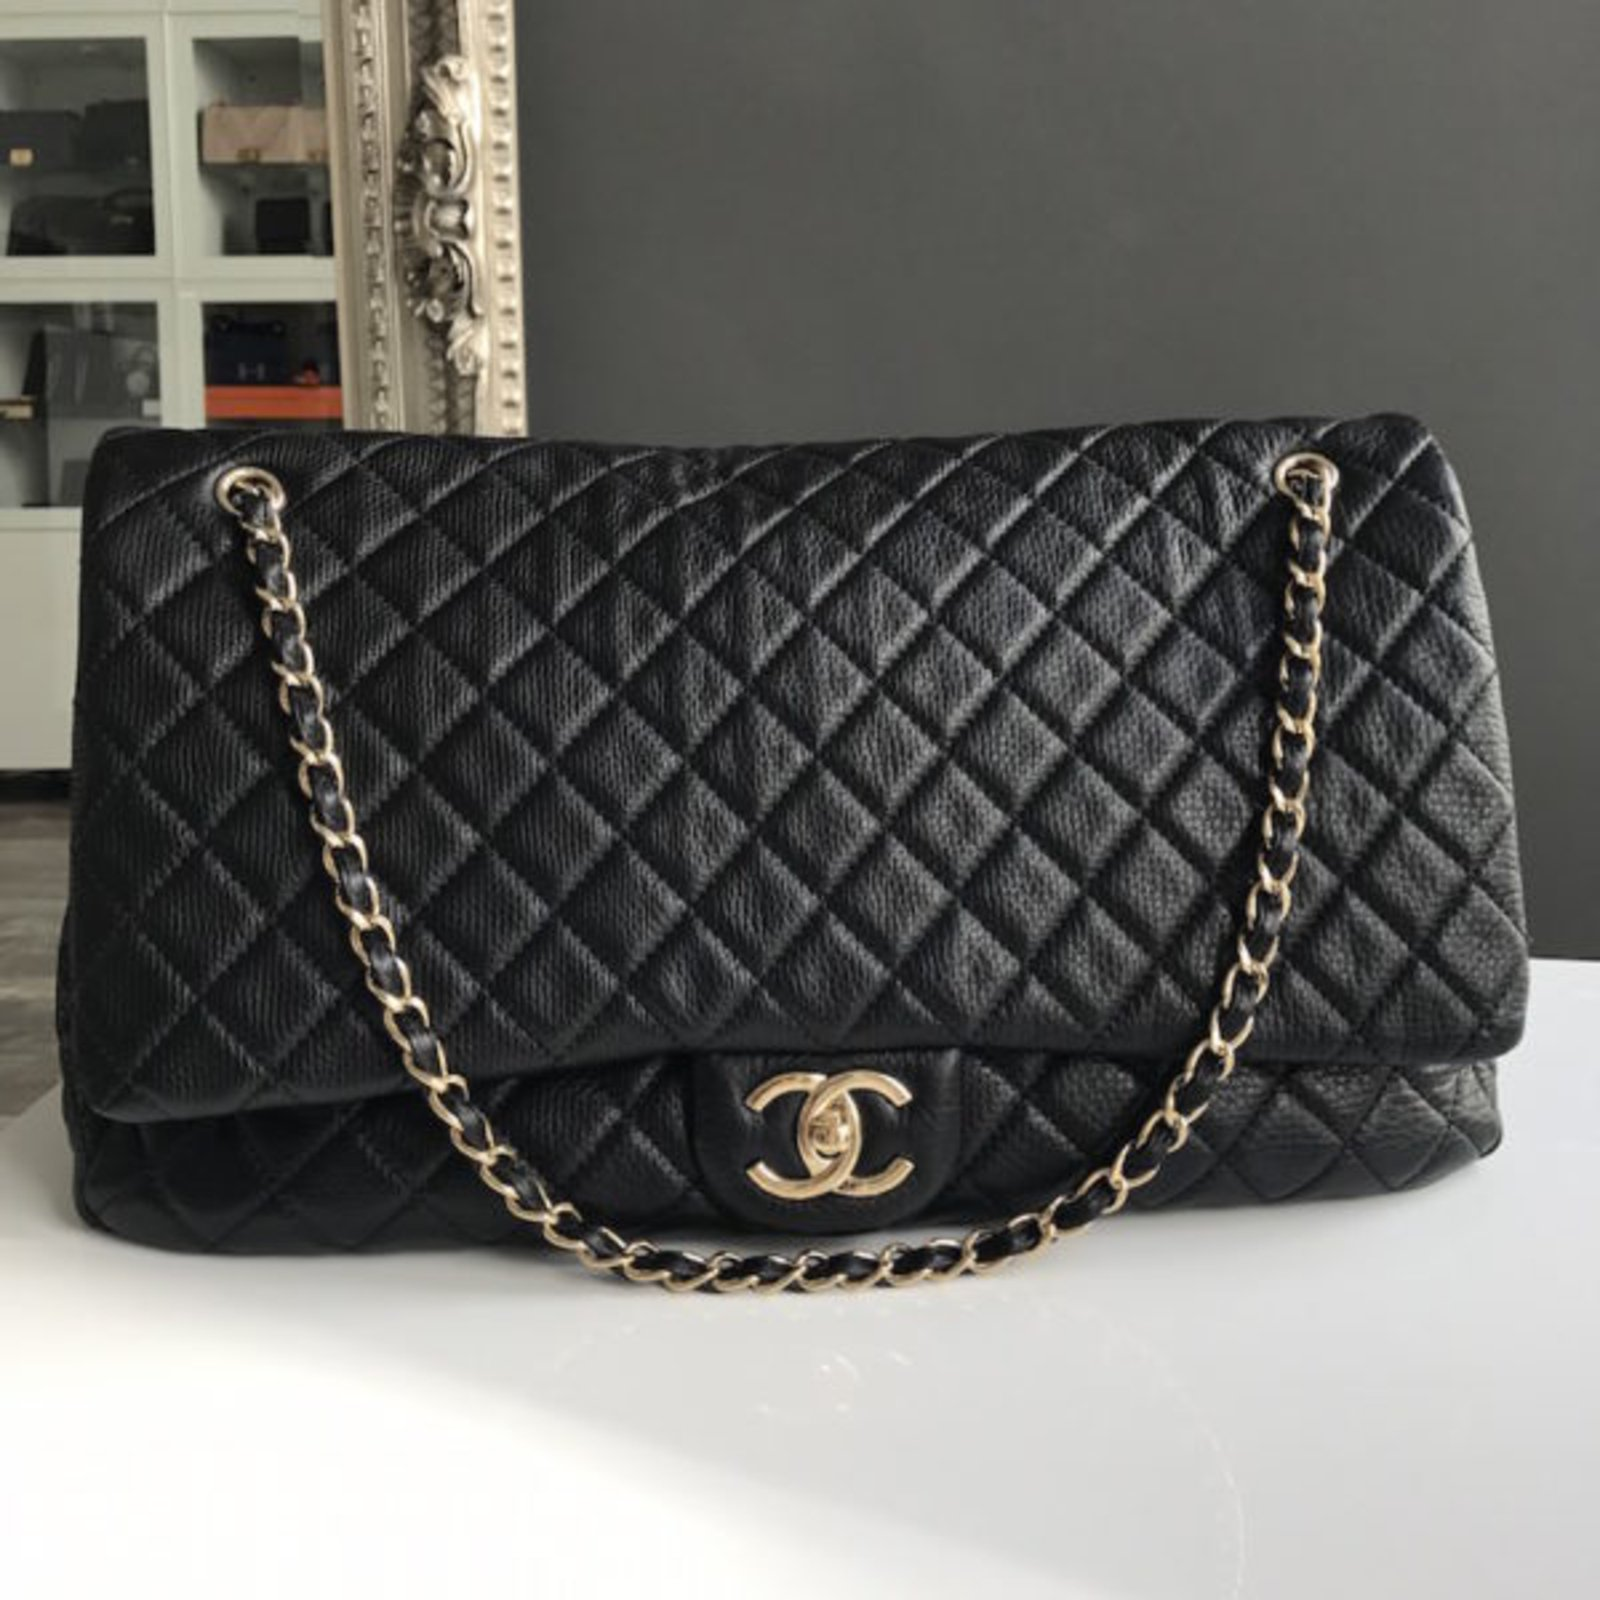 442c9a16e4d3 Chanel Chanel Timeless XXL Travel bag Leather Black ref.49262 - Joli Closet